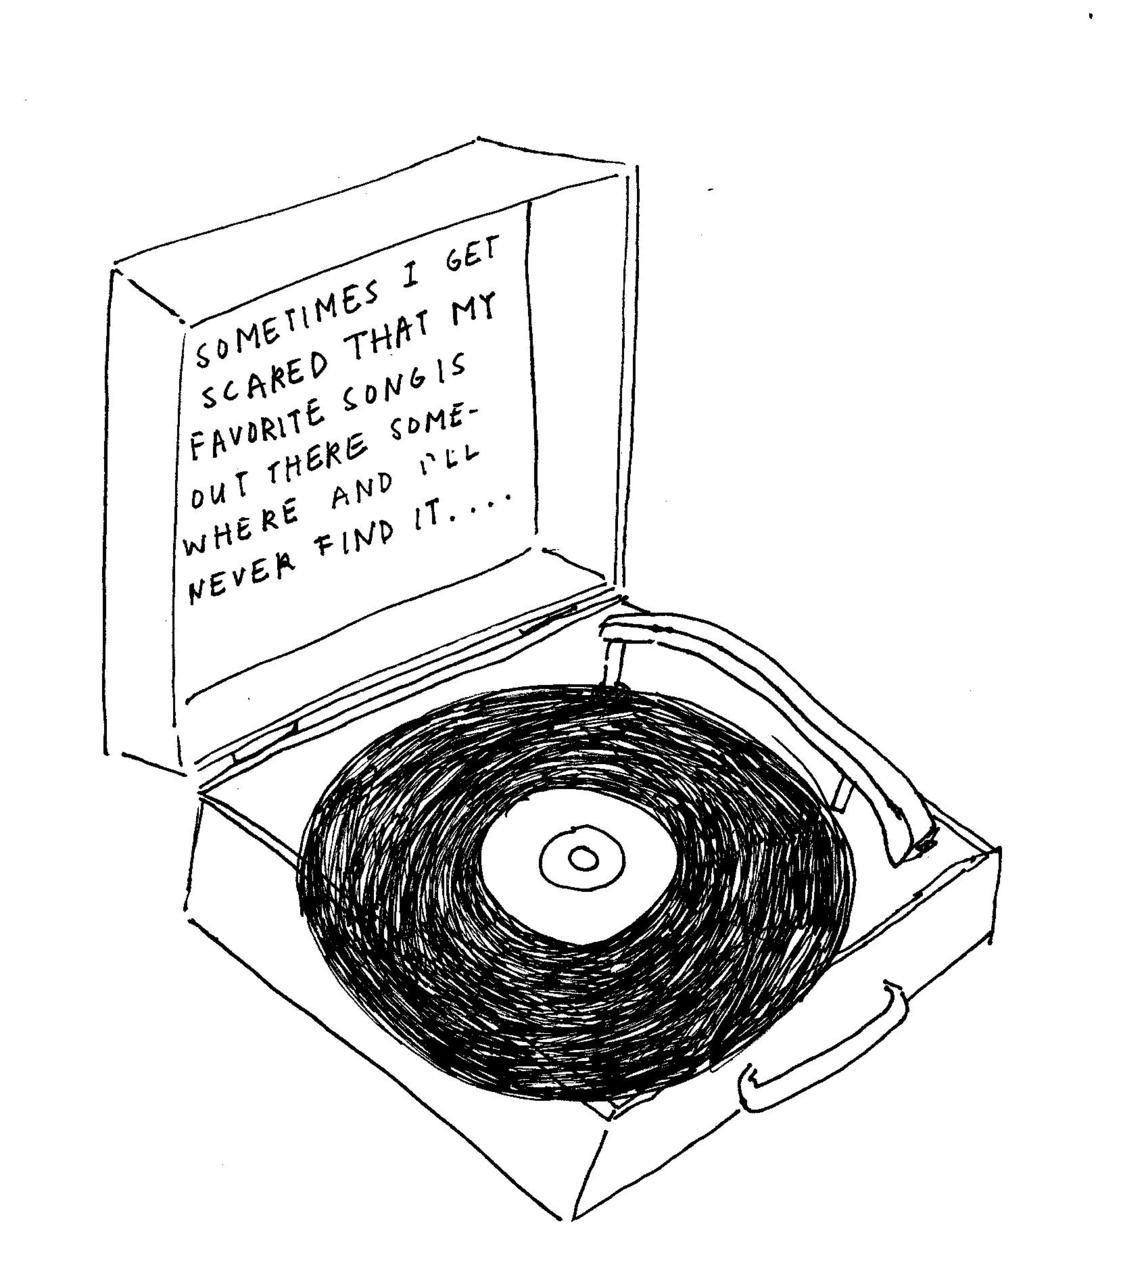 Sometimes I Get Scared That My Favorite Song Is Out There Somewhere And I Ll Never Find It Record Player Tattoo Music Tattoos Vinyl Records